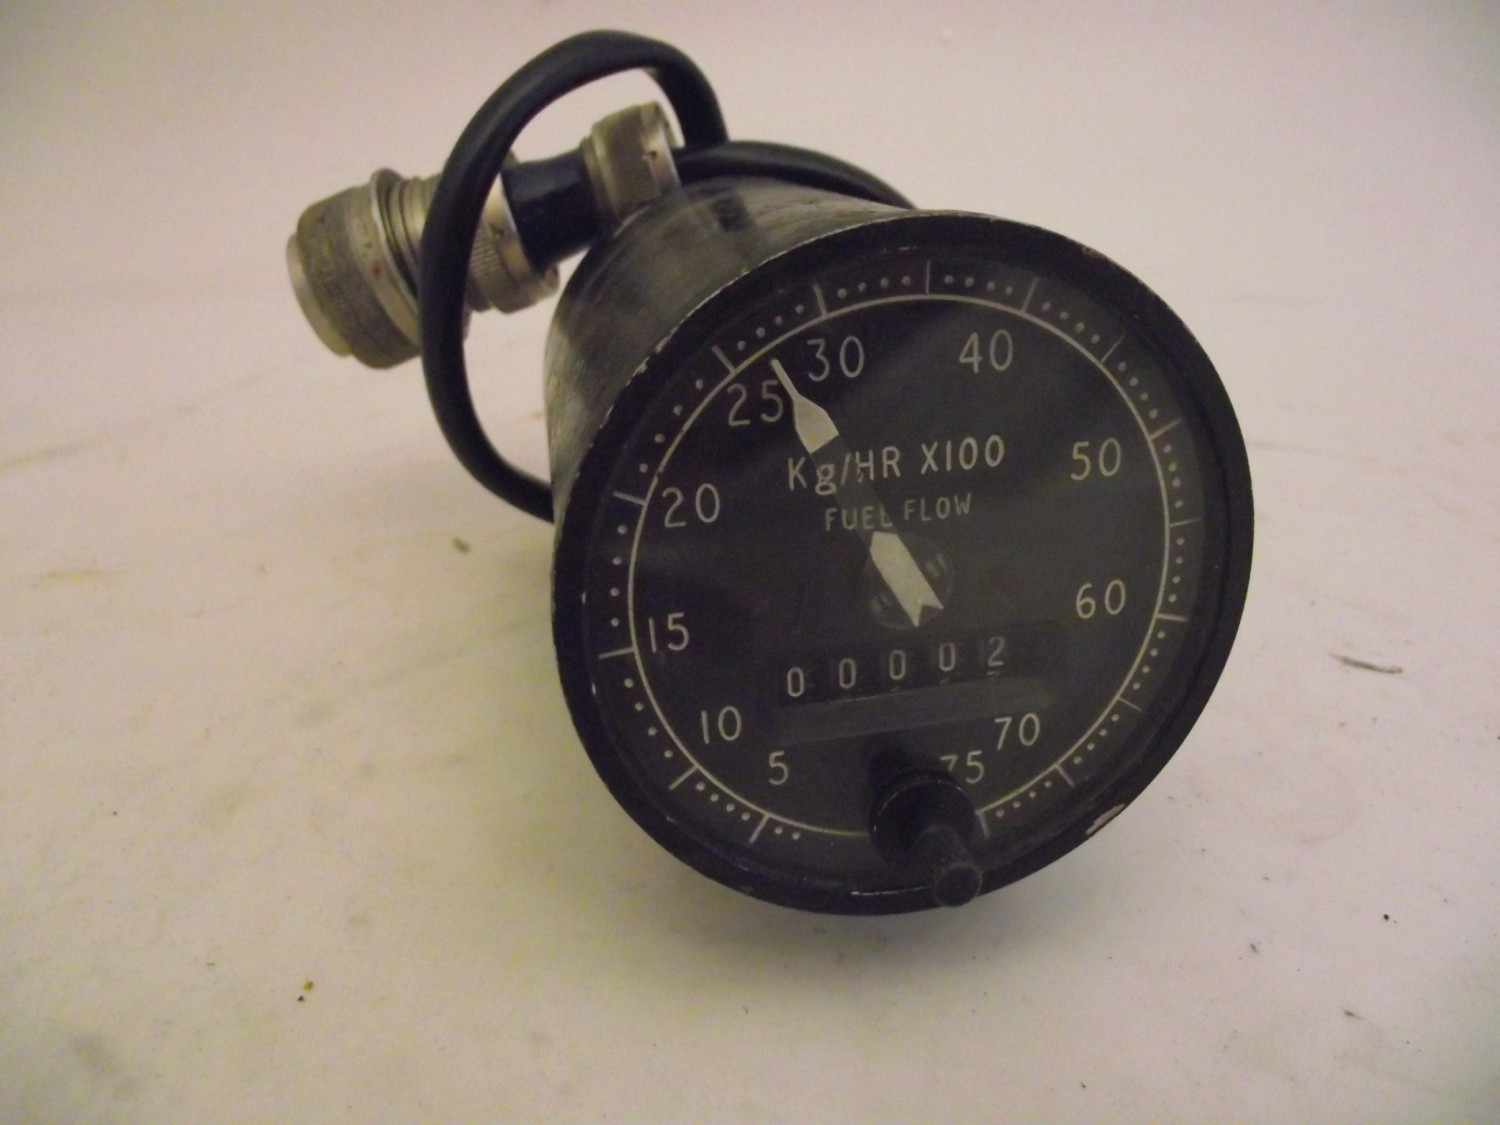 Fuel Consumed and Flow Rate Meter